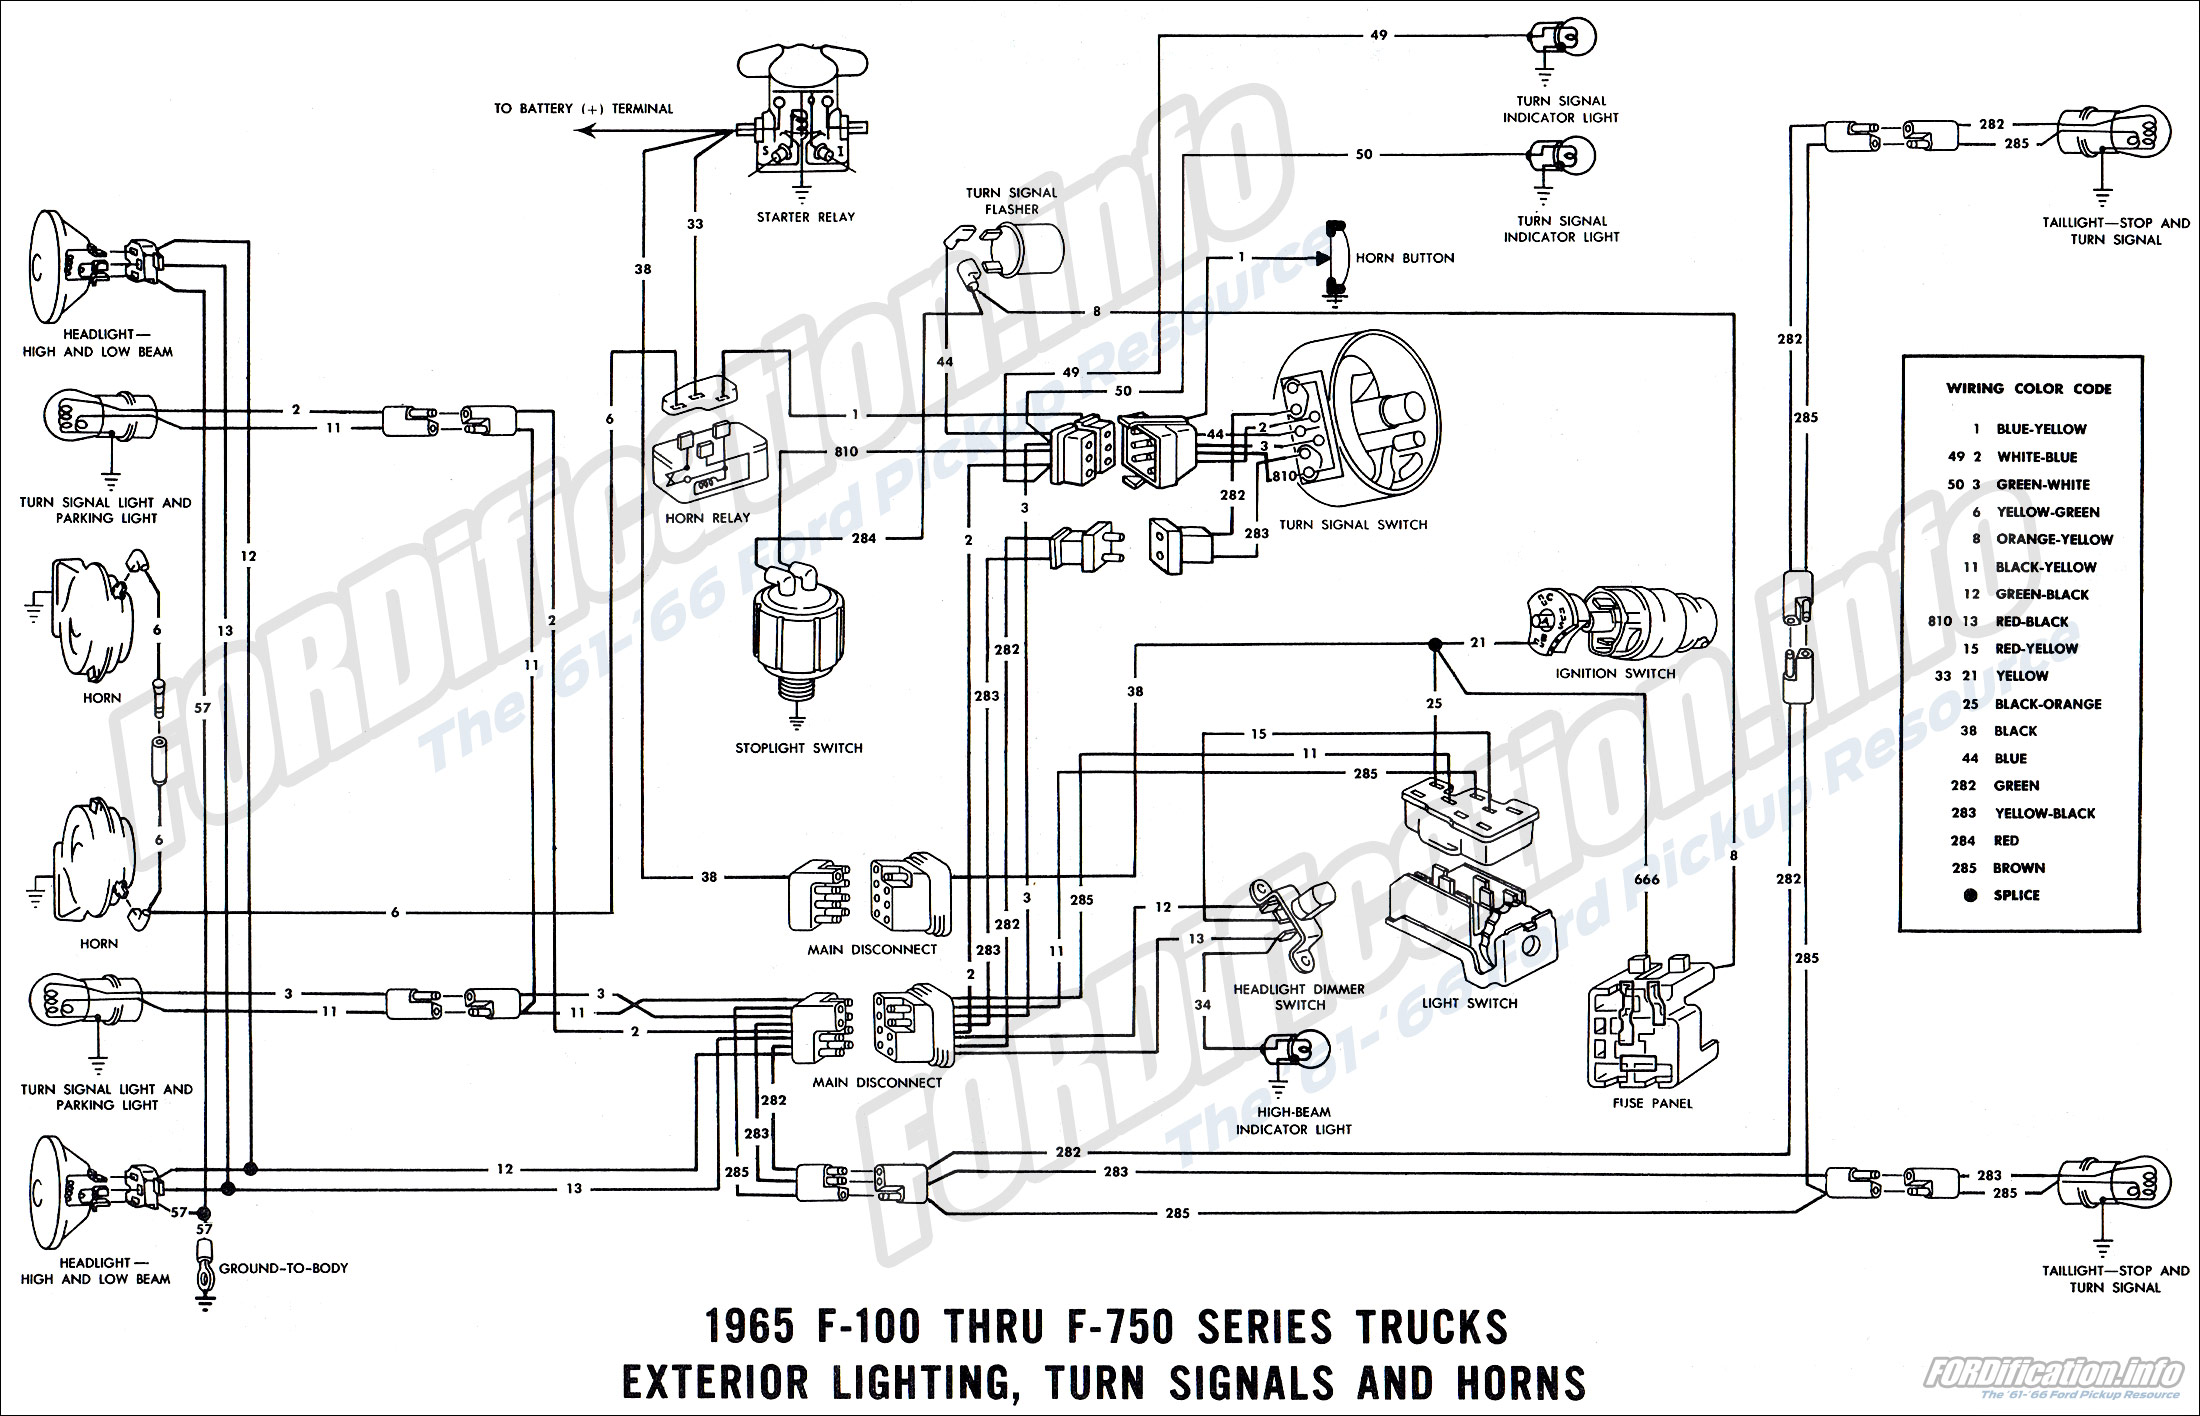 1951 Mercury Turn Signal Wiring Diagram Schematic Great For Flasher Ford Box Rh 44 Pfotenpower Ev De 1949 1950